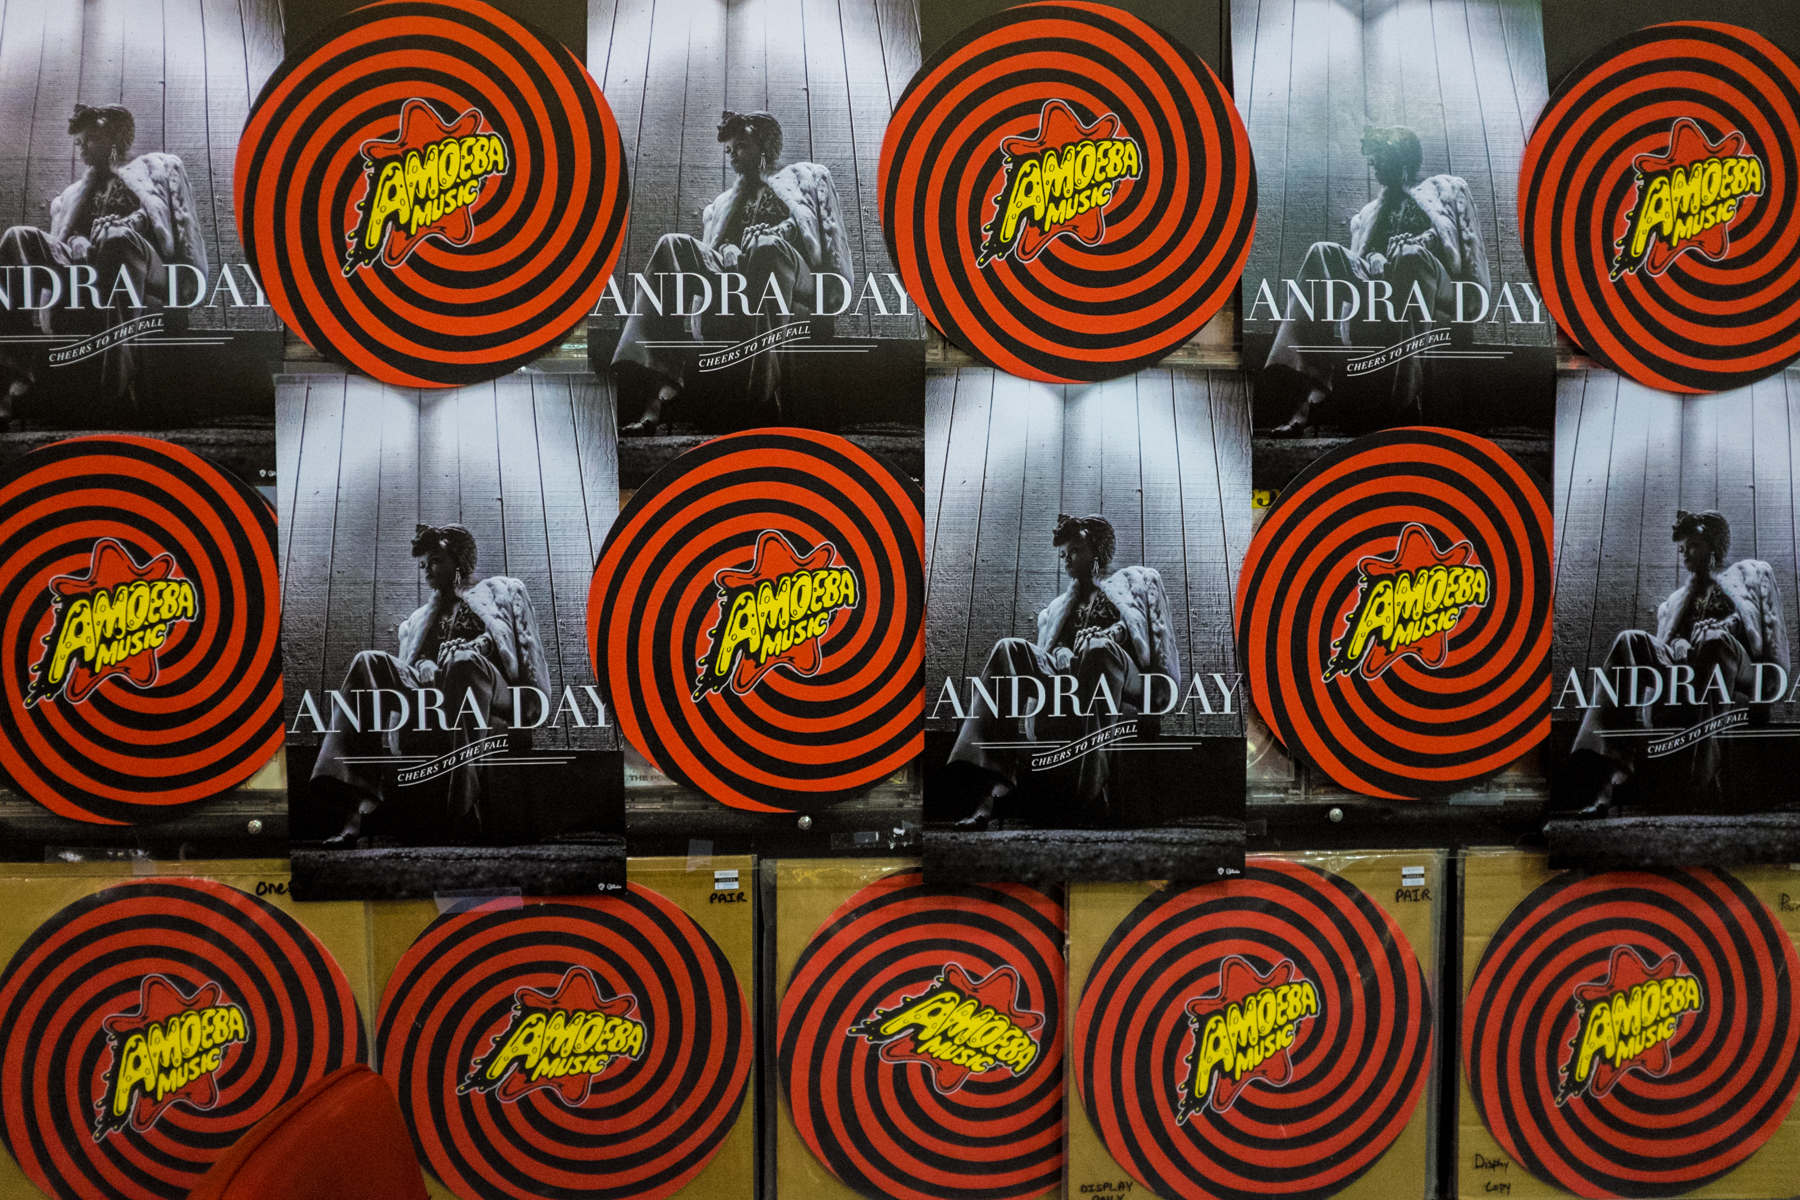 Red Bull 30 Days in LA – Day 13: Andra Day and Club Vinyl